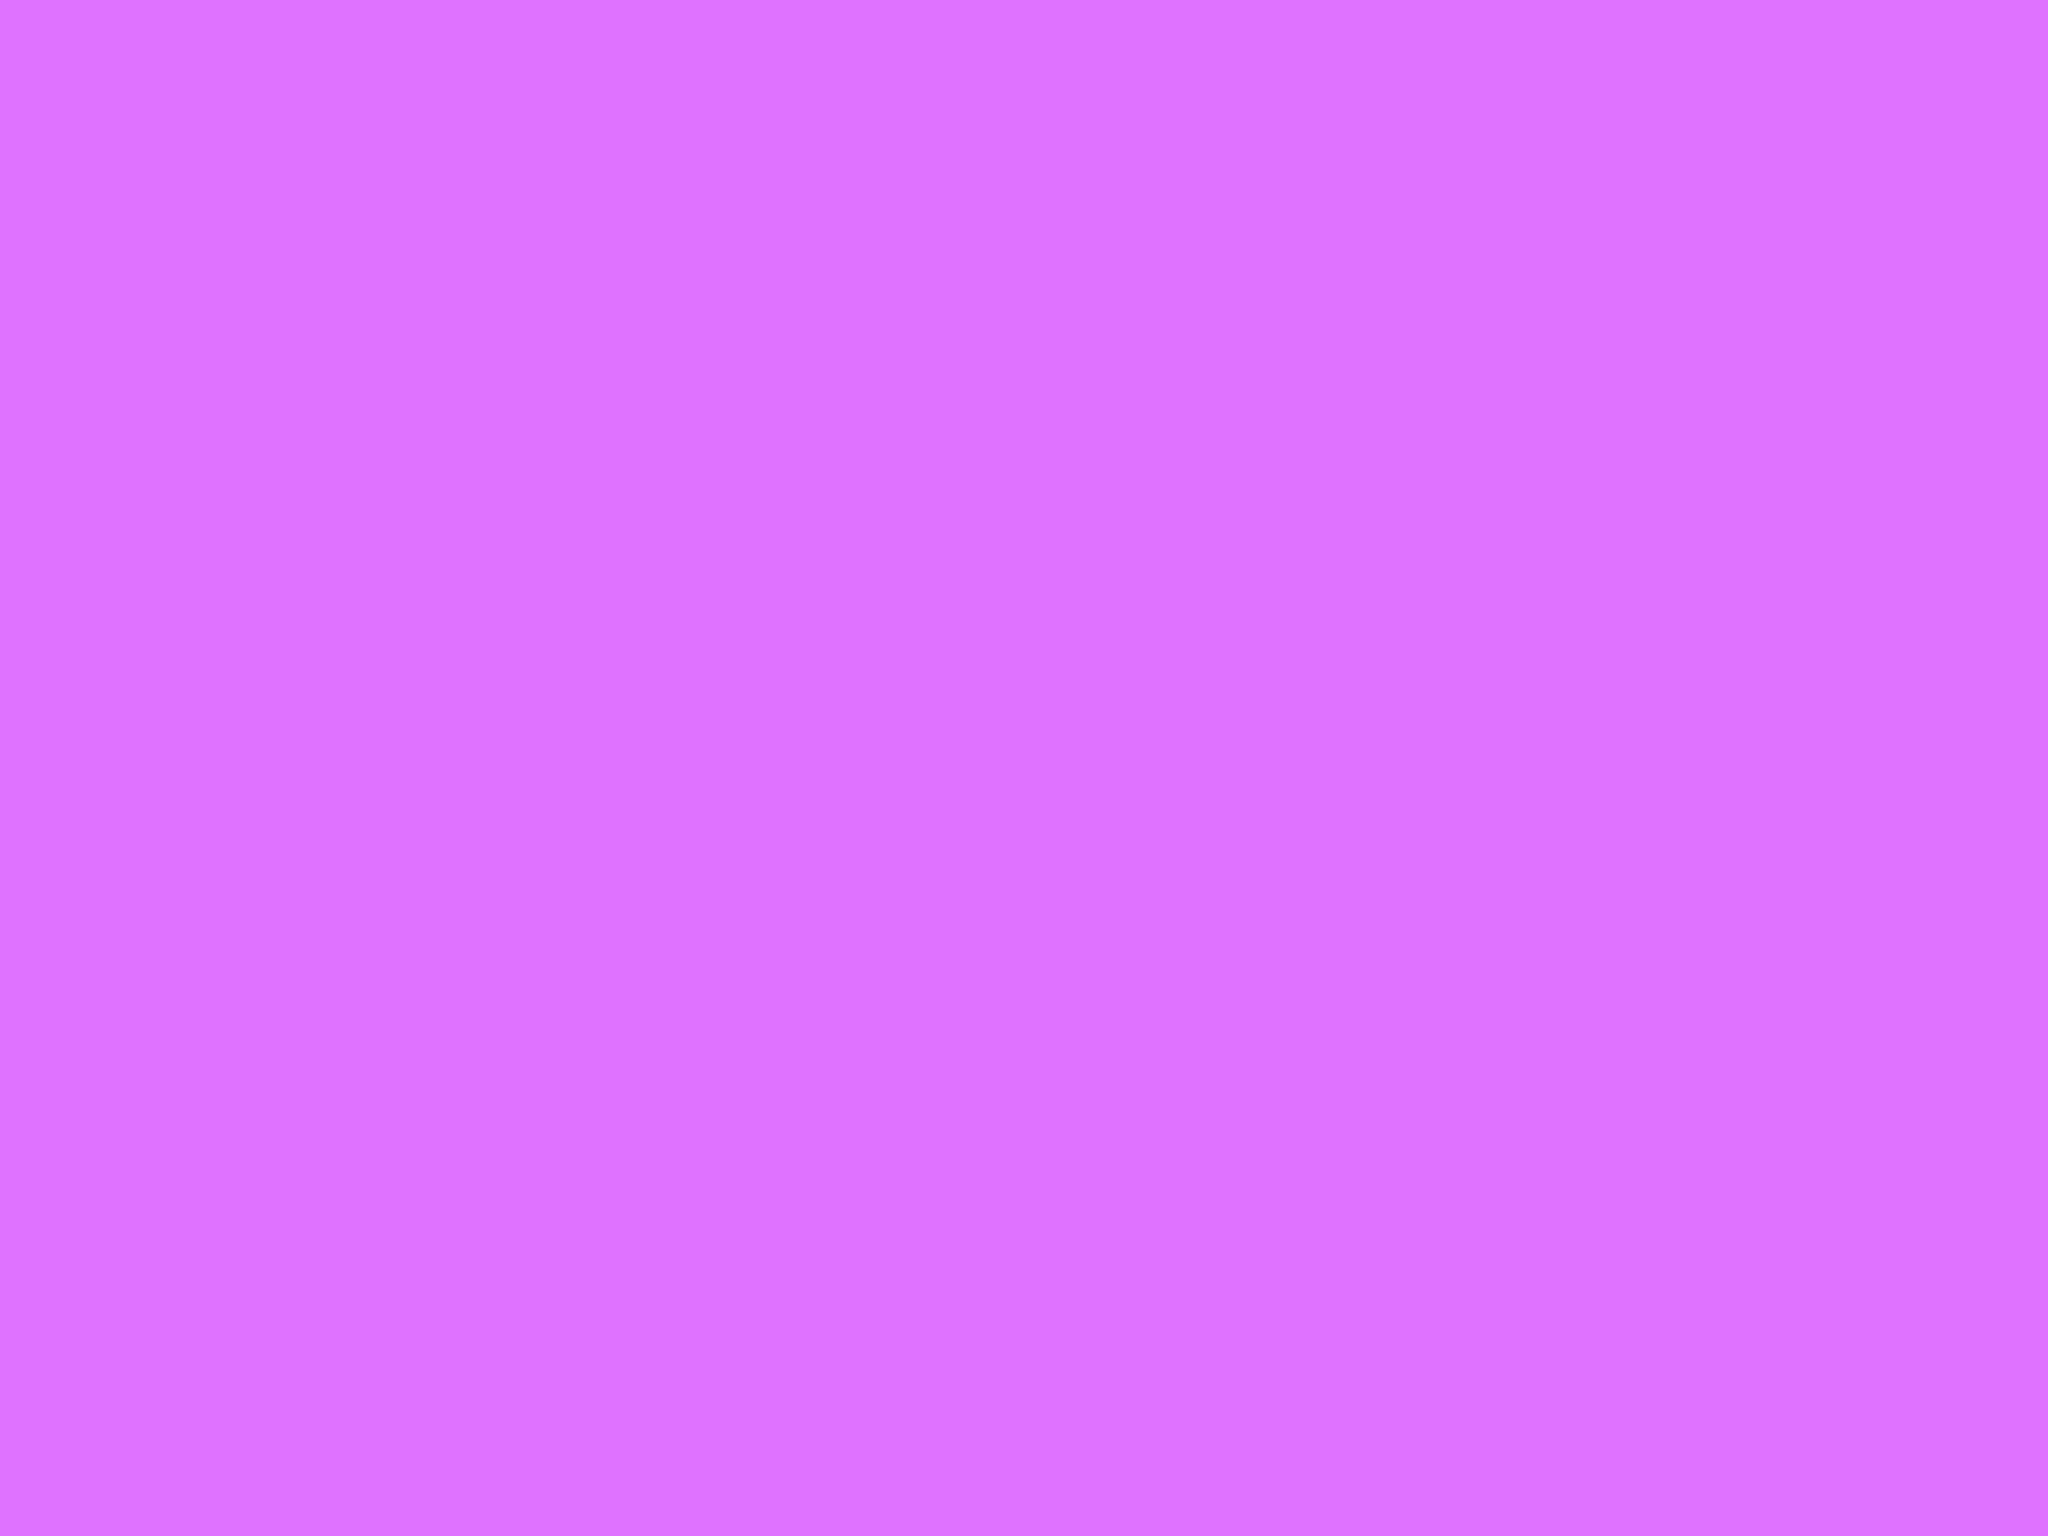 2048x1536 Heliotrope Solid Color Background